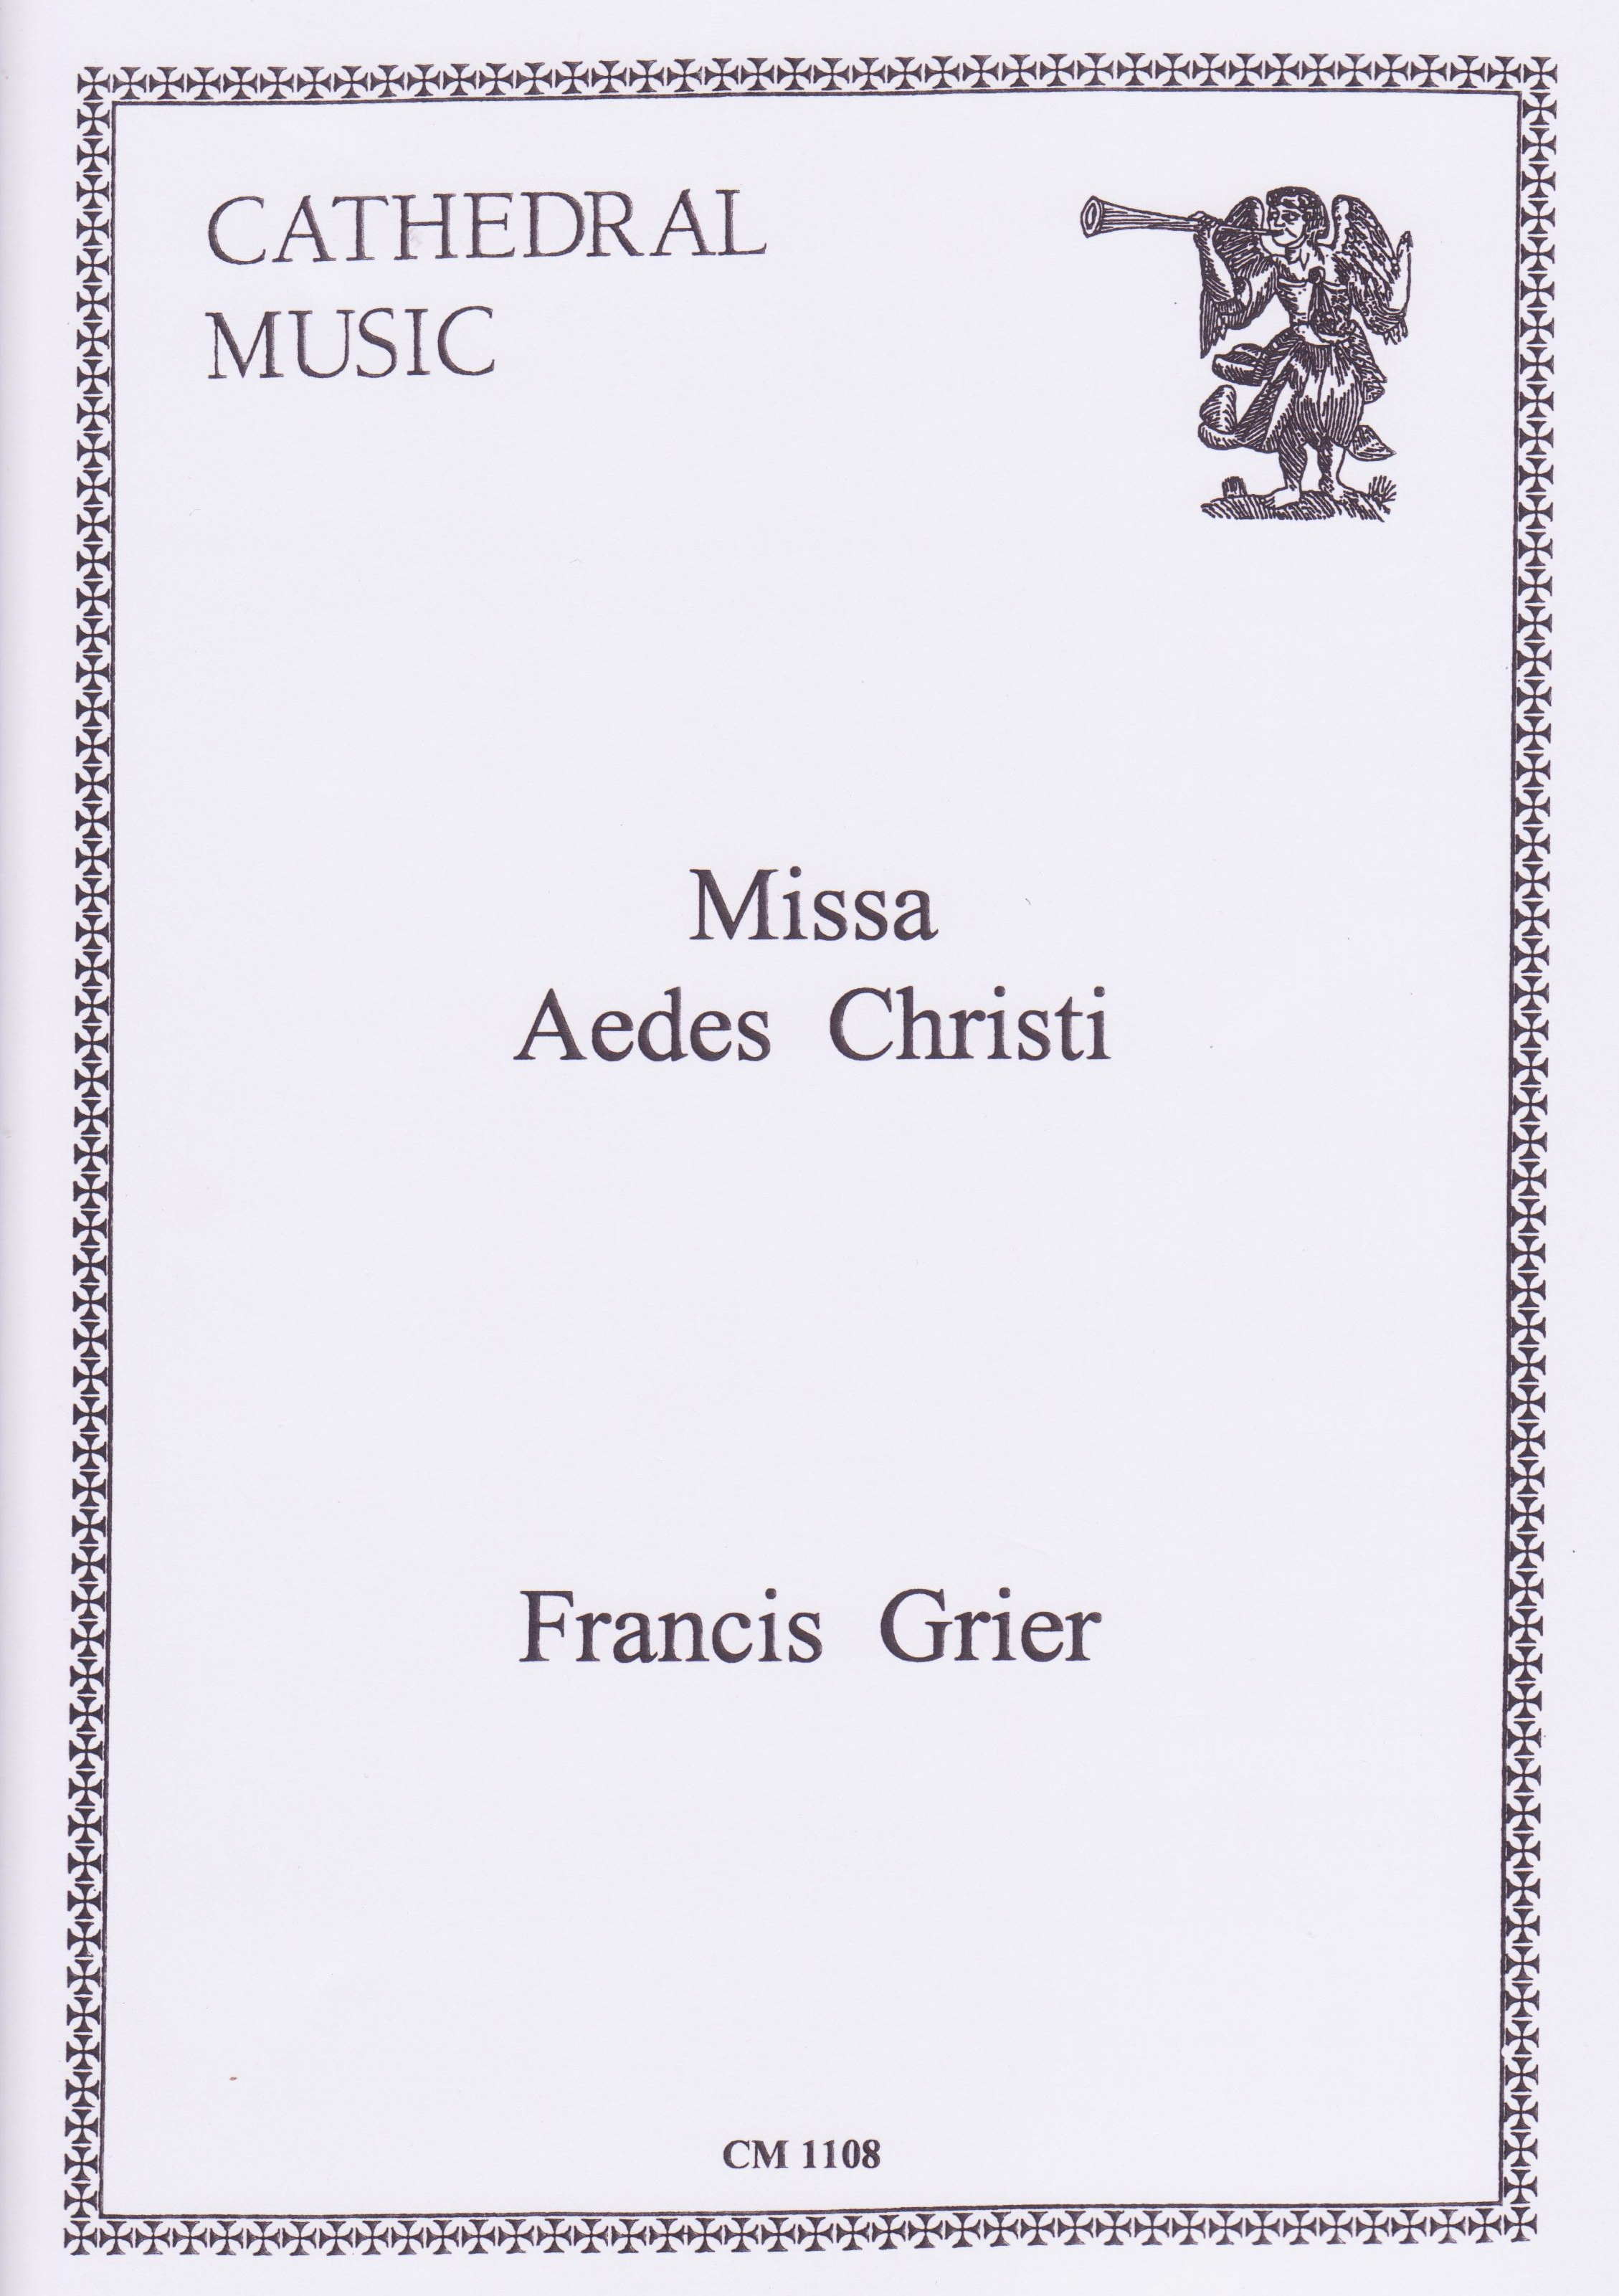 Composer: Francis Grier  Words from the Latin Mass